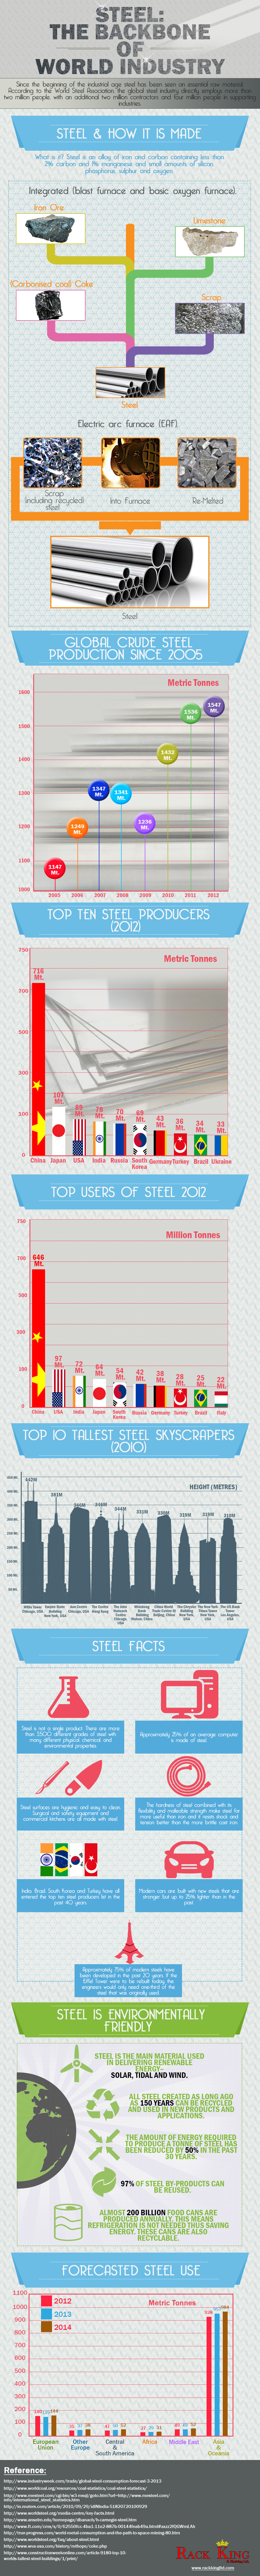 Steel: The backbone of world industry